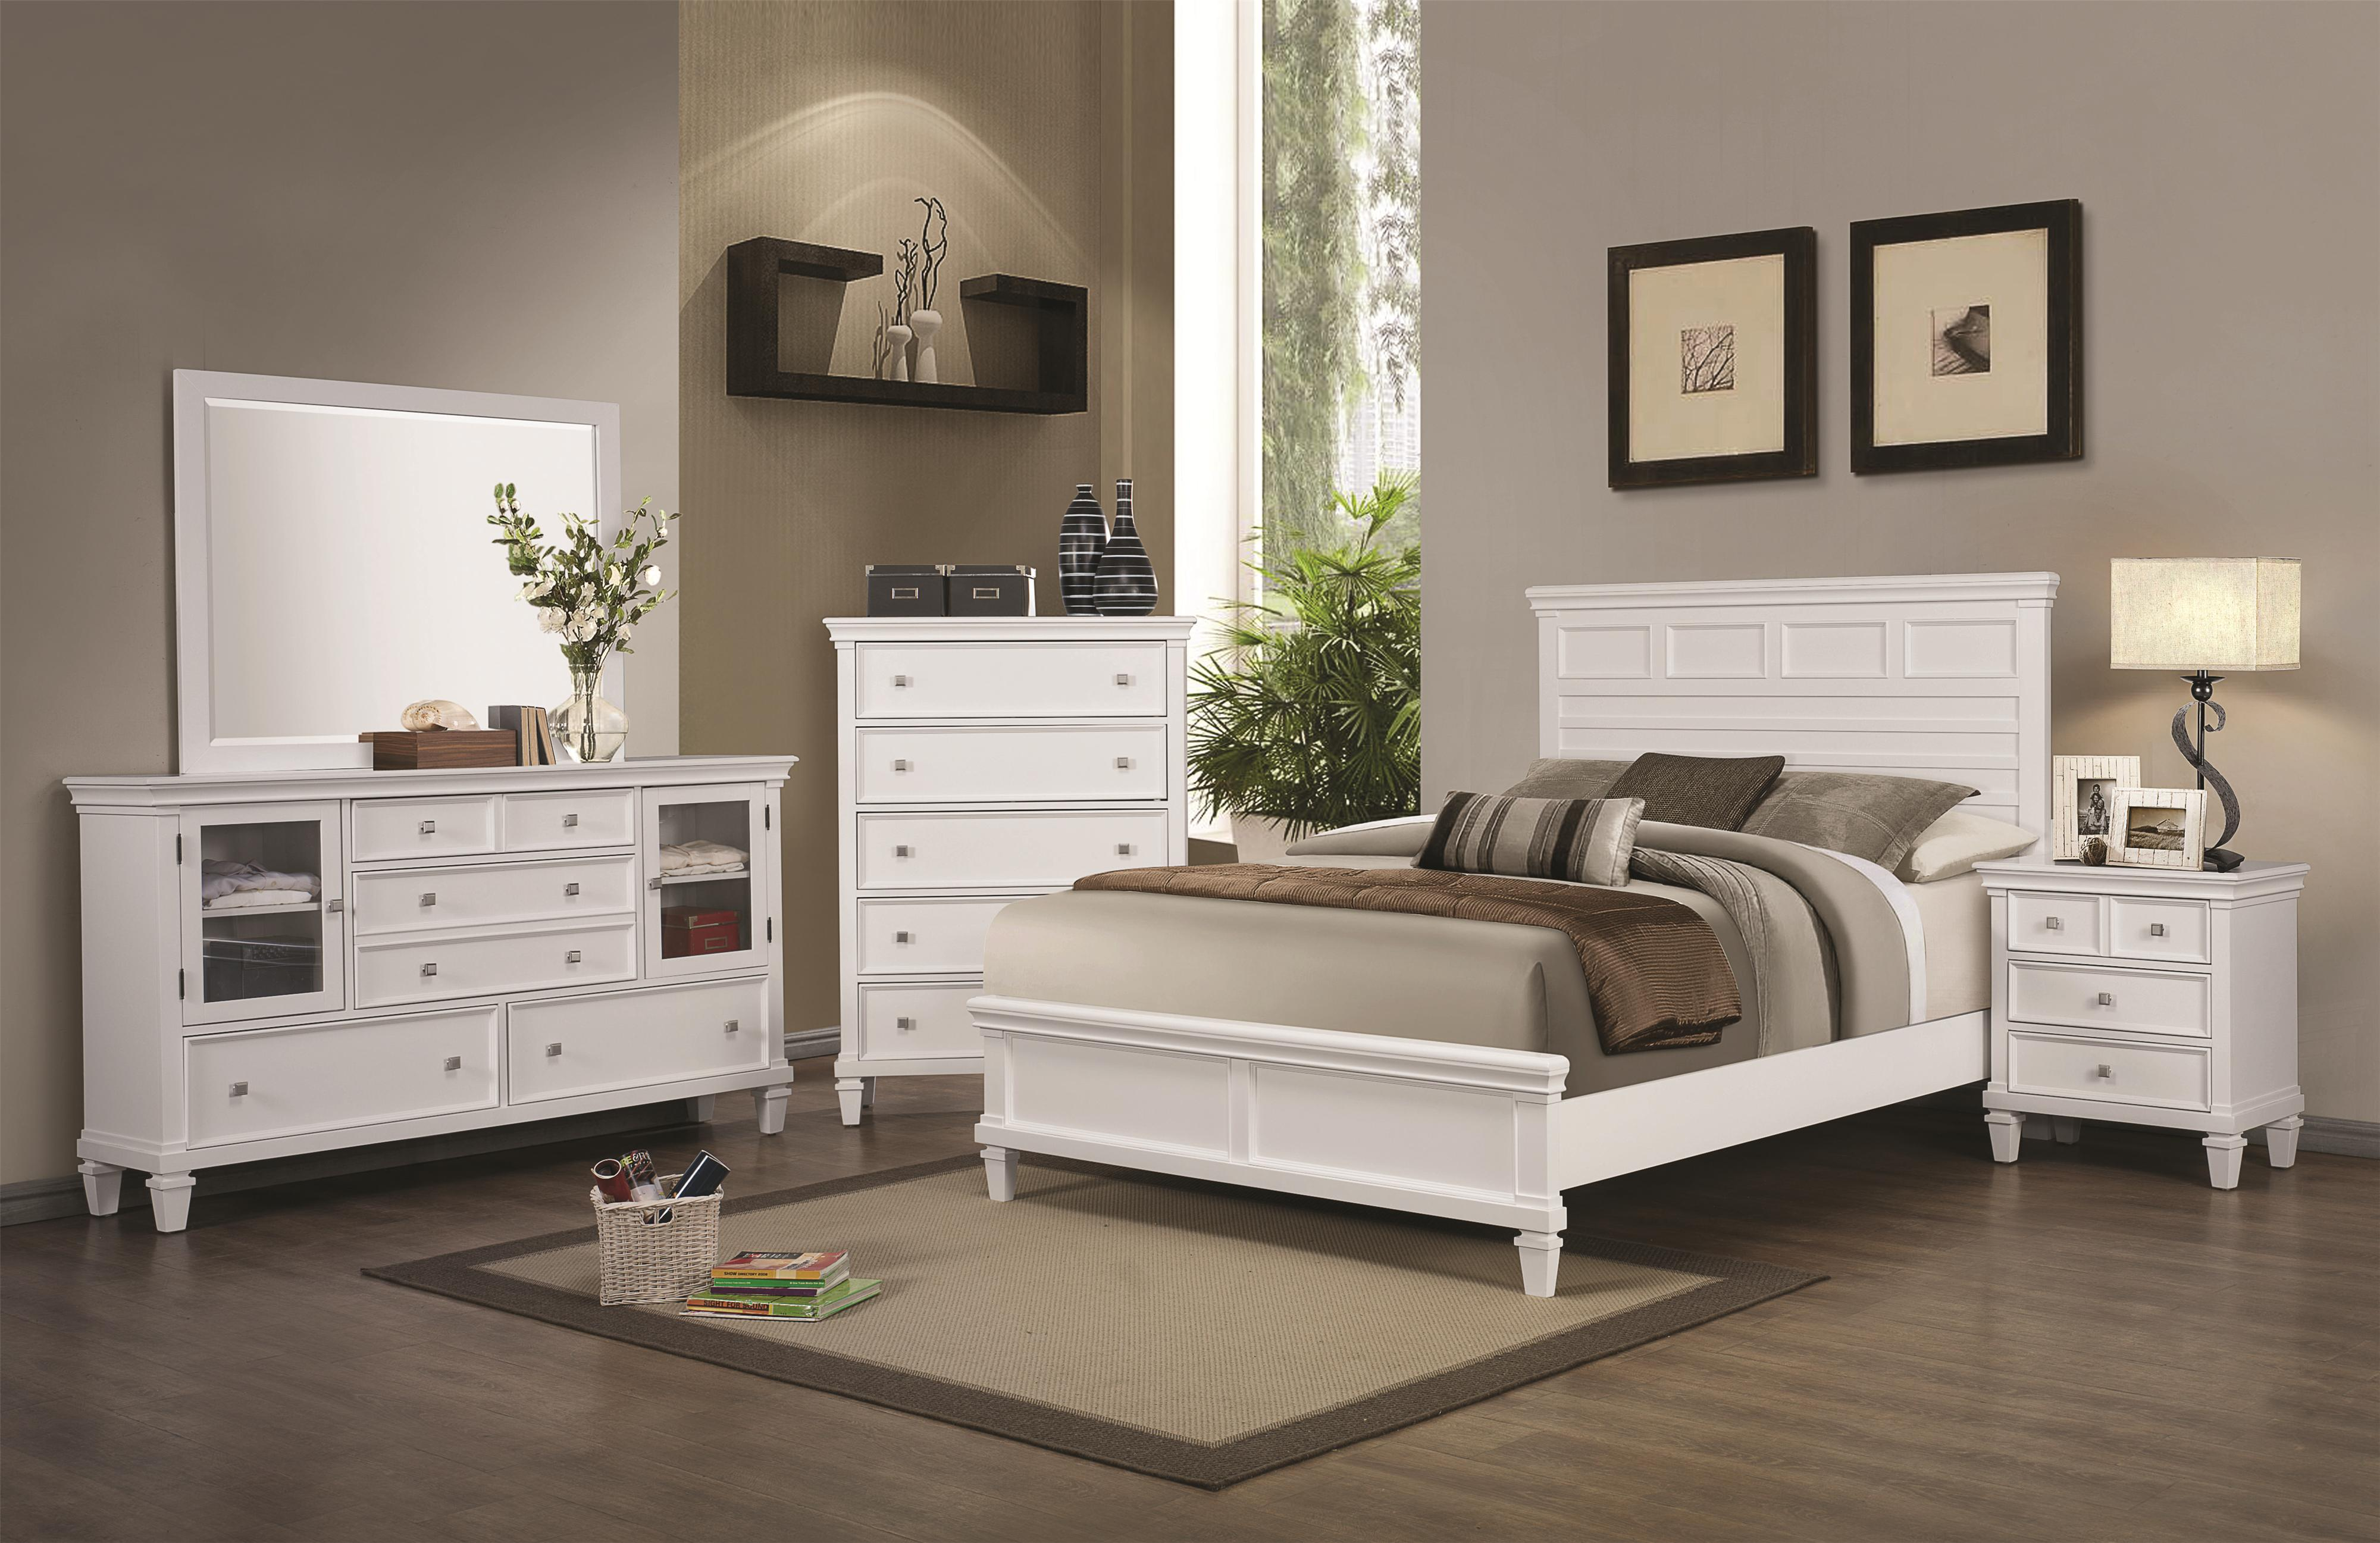 Camellia 4 Piece Bed Set Quality Furniture At Affordable Prices